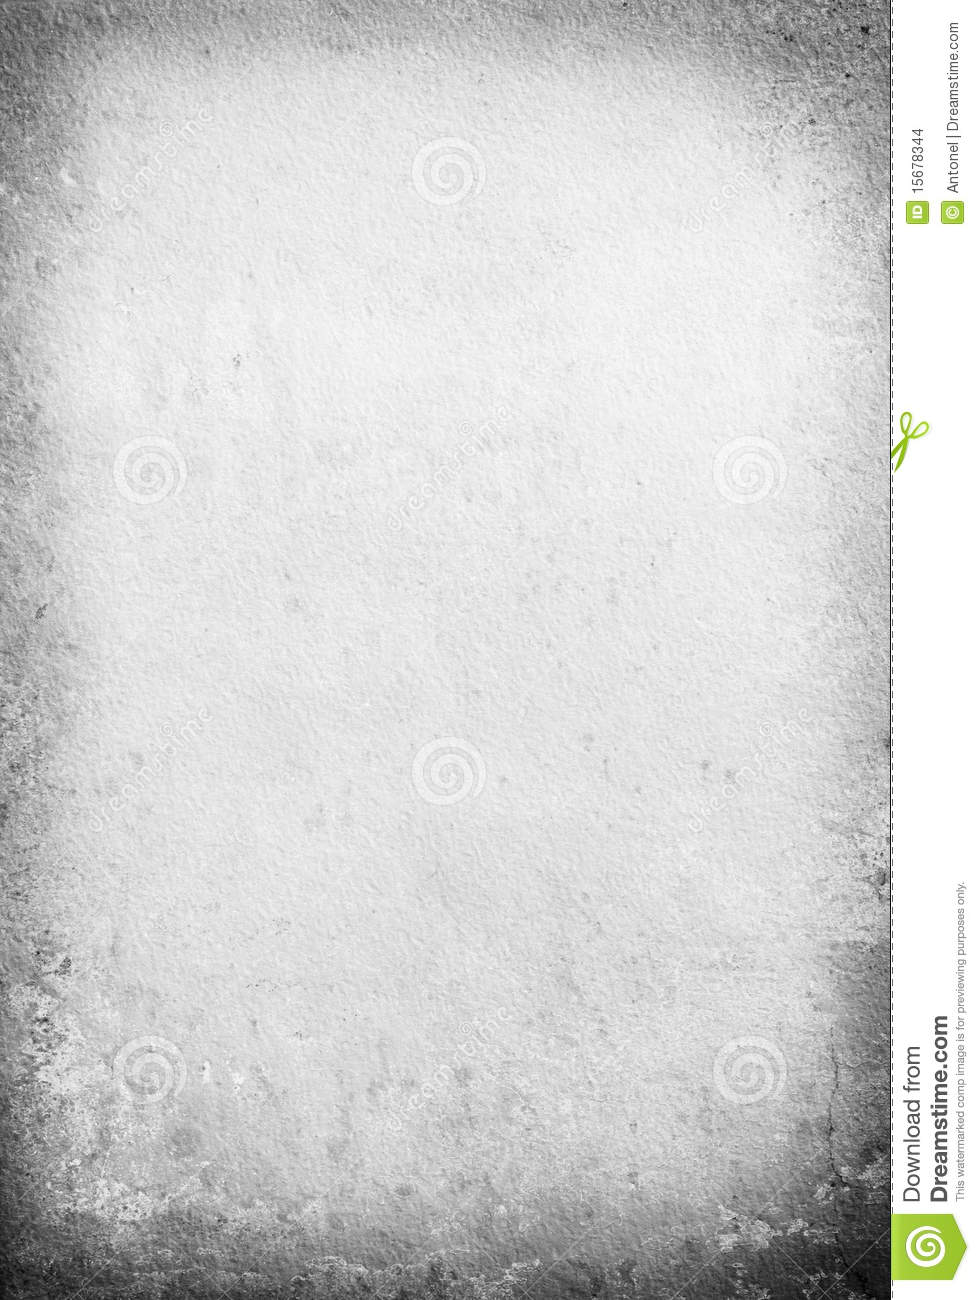 Grey paper texture stock photo. Image of empty, design ...